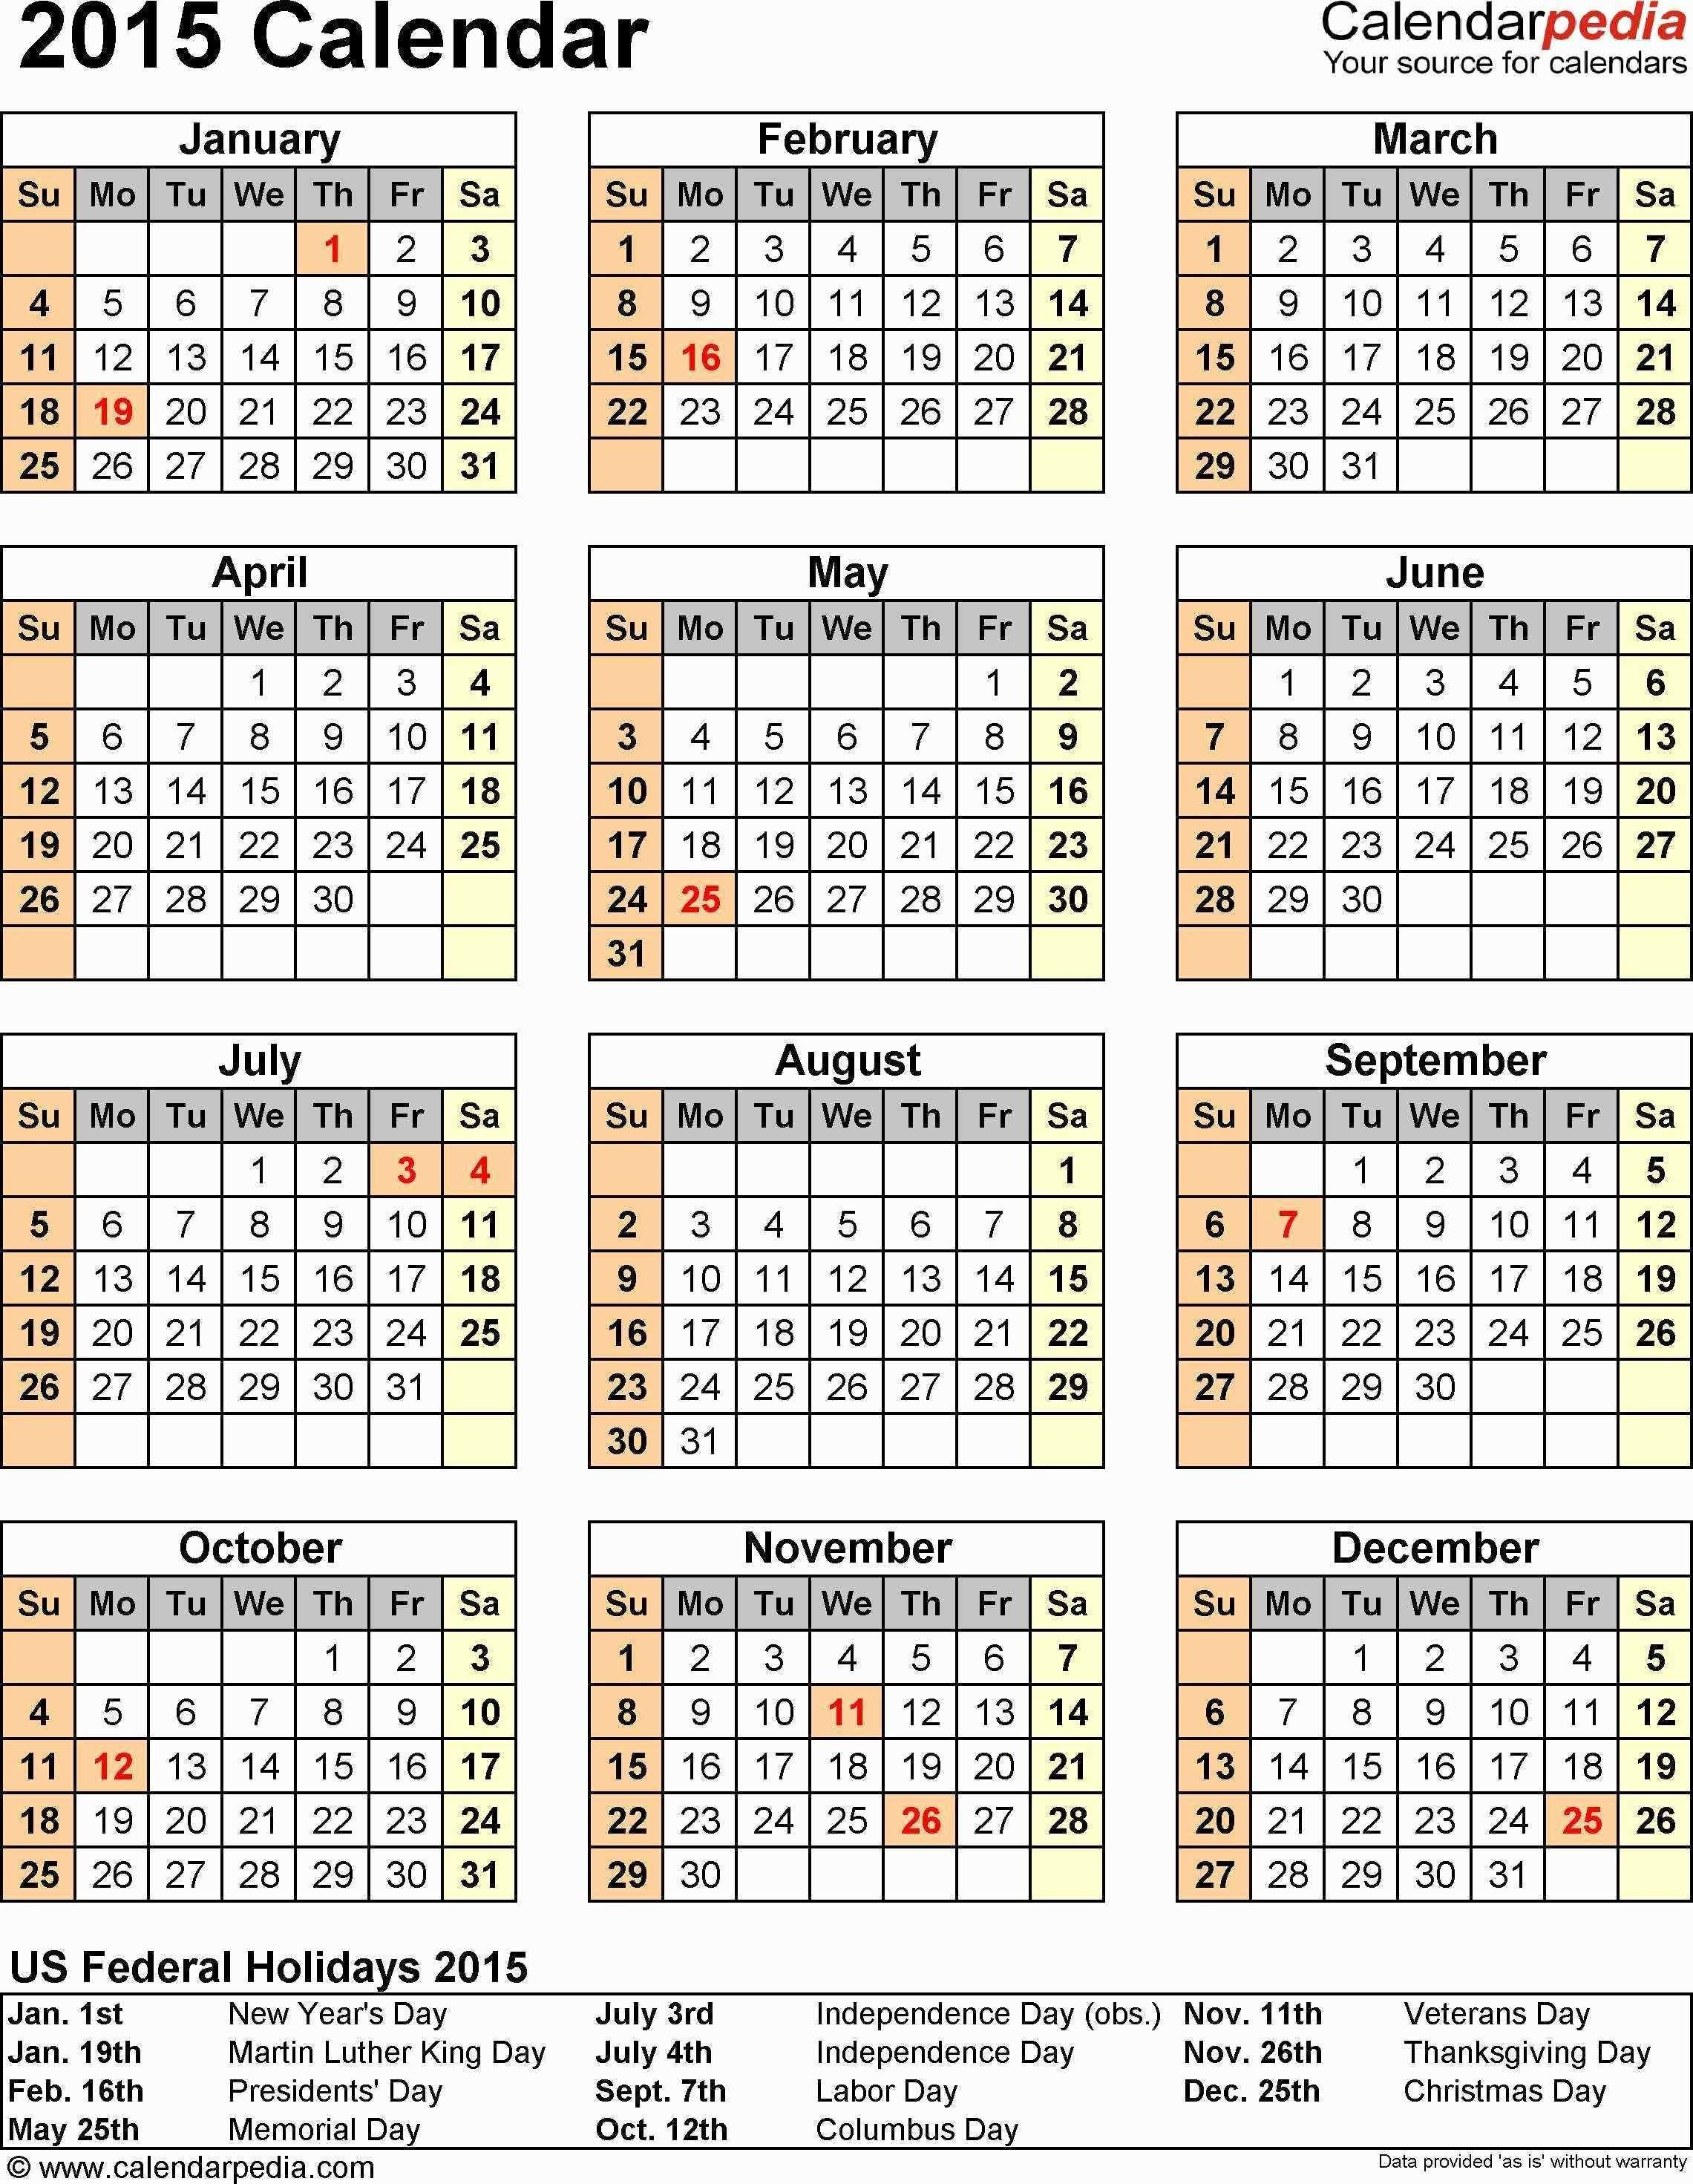 Calendario De 2019 Abril Más Caliente 2019 Calendar Template Australia 89 Free Calendar Templates for 2018 Of Calendario De 2019 Abril Recientes 2019 Calendar Template Australia 89 Free Calendar Templates for 2018